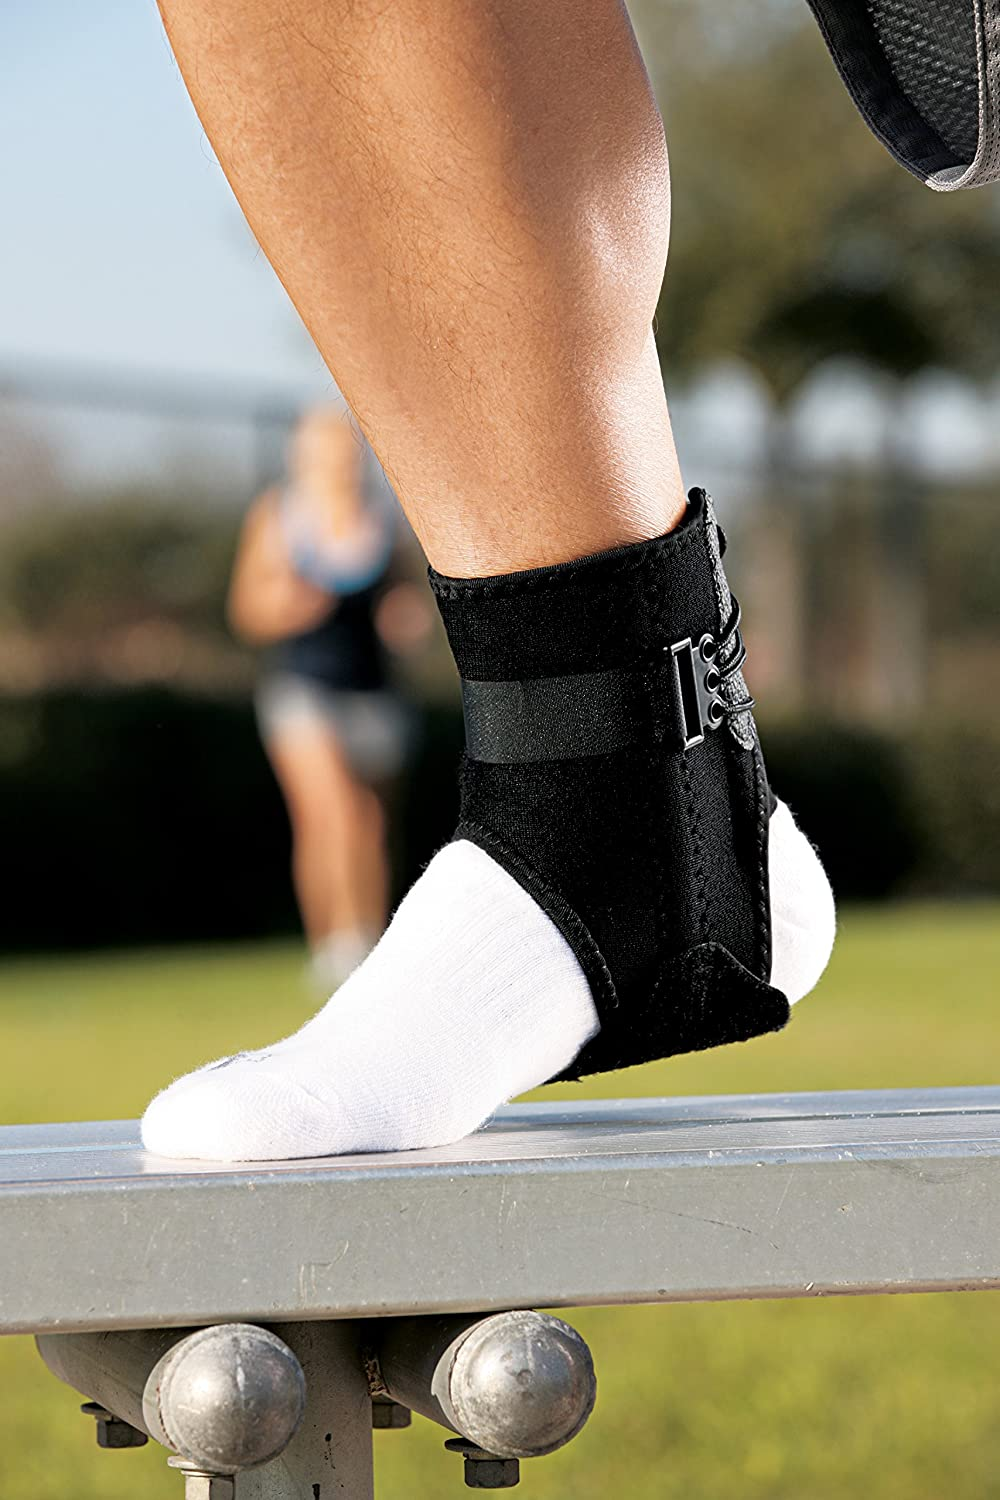 Americas Most Trusted Brand of Braces and Supports ACE Brand Ankle Brace with Side Stabilizers Money Back Satisfaction Guarantee